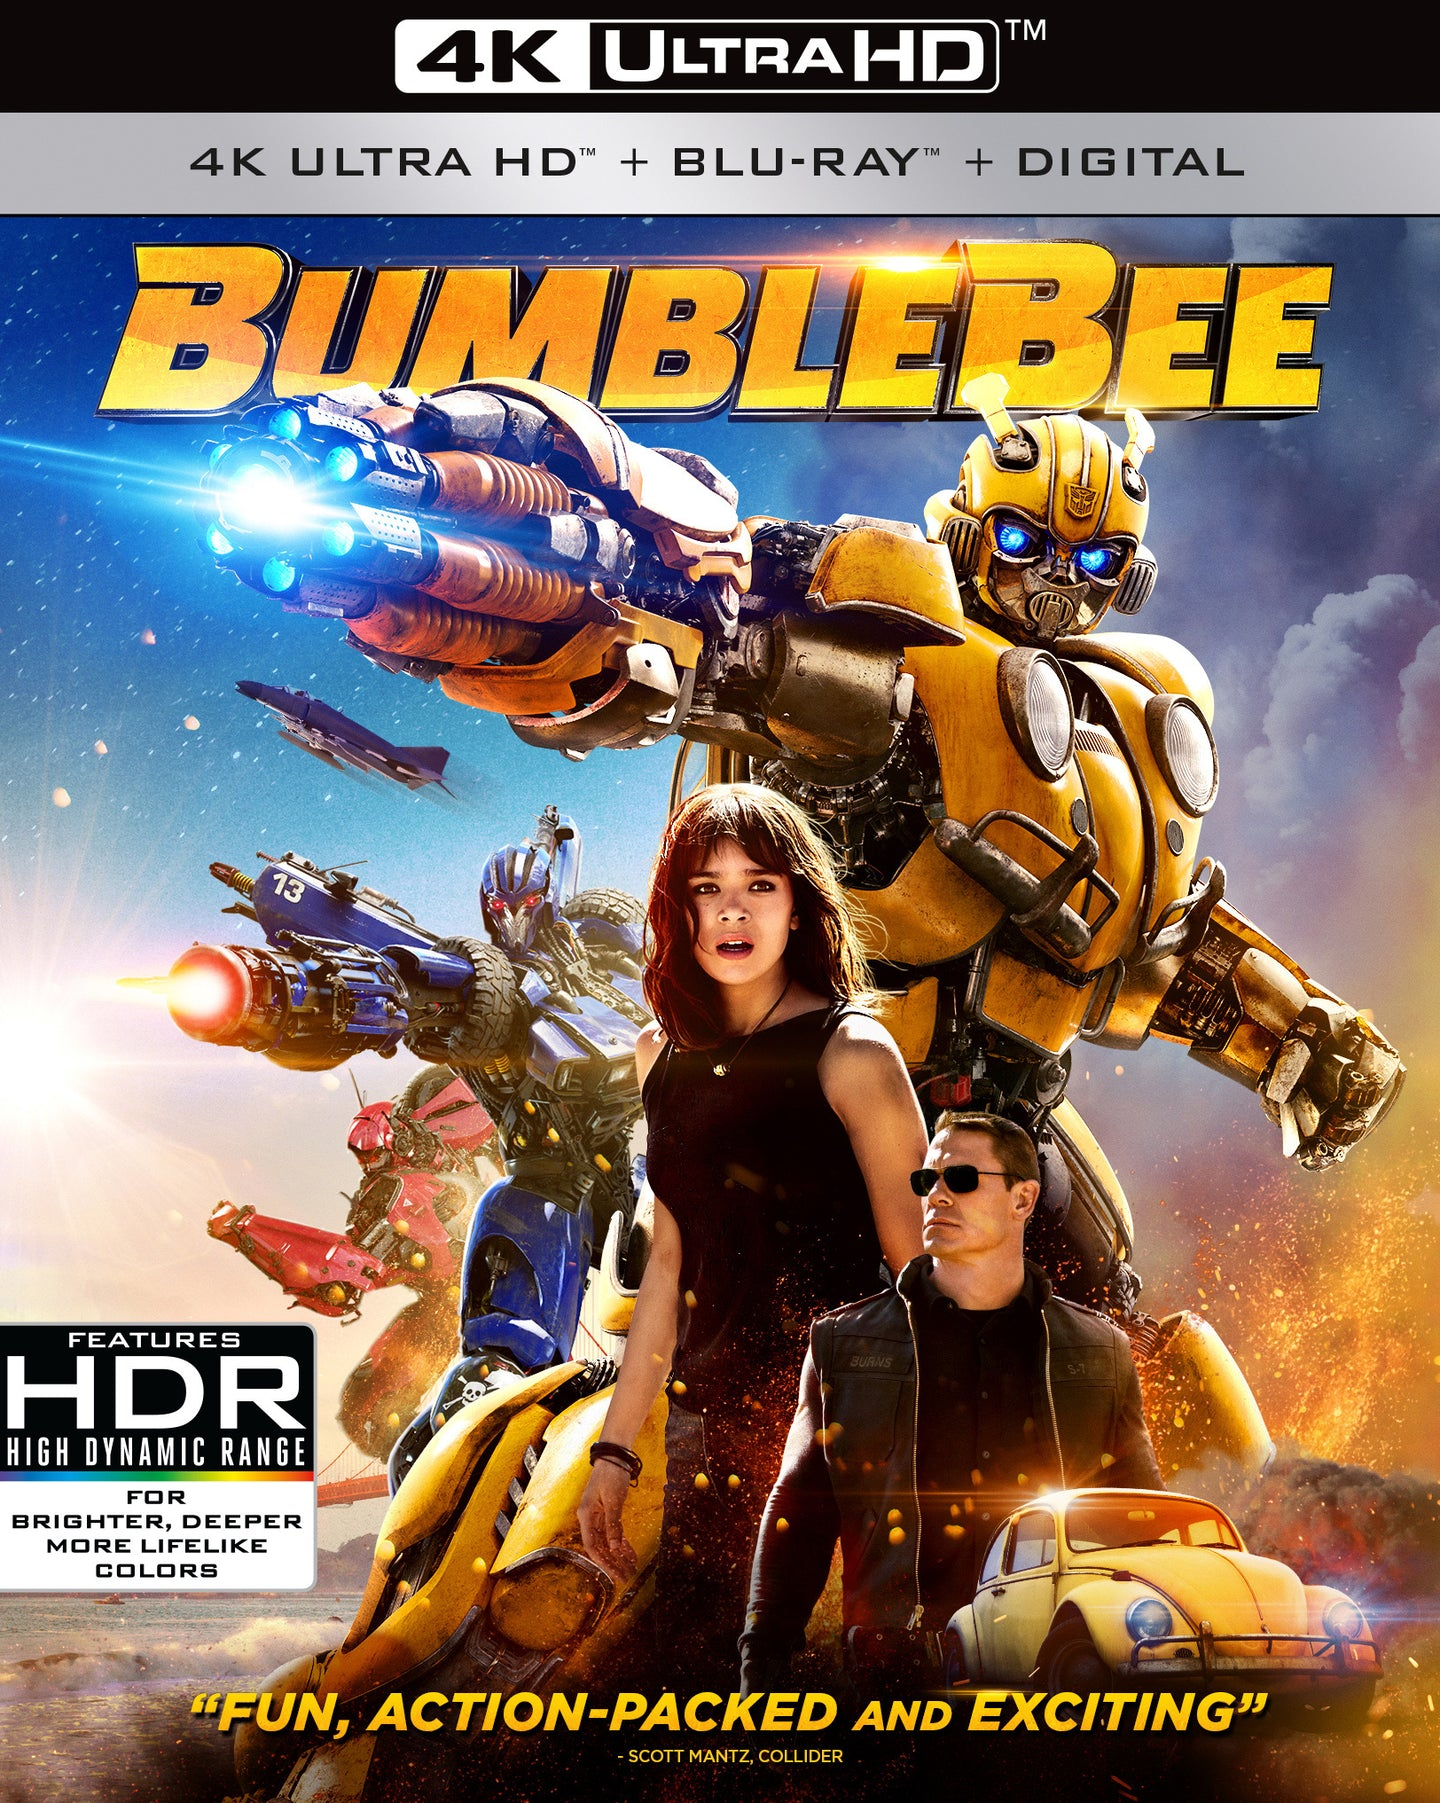 Bumblebee (2018) Vudu 4K redemption only